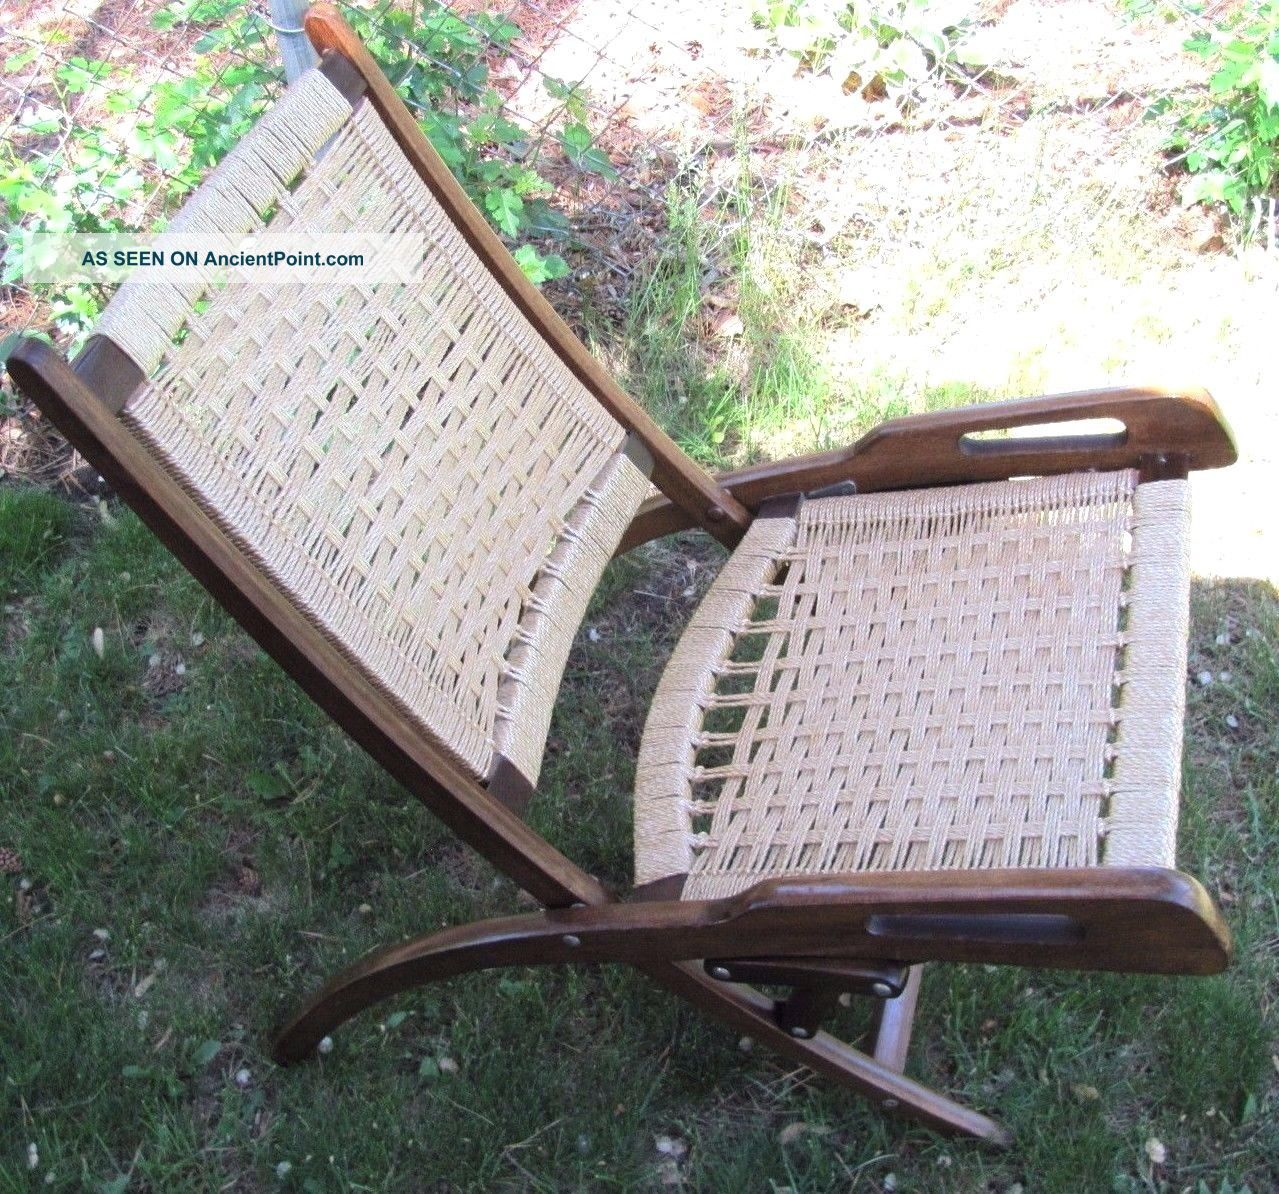 Wonderful image of  Modern Vtg Hans Wegner? Woven Rope Wood Handles Folding Comfy Chair with #4C8645 color and 1279x1194 pixels